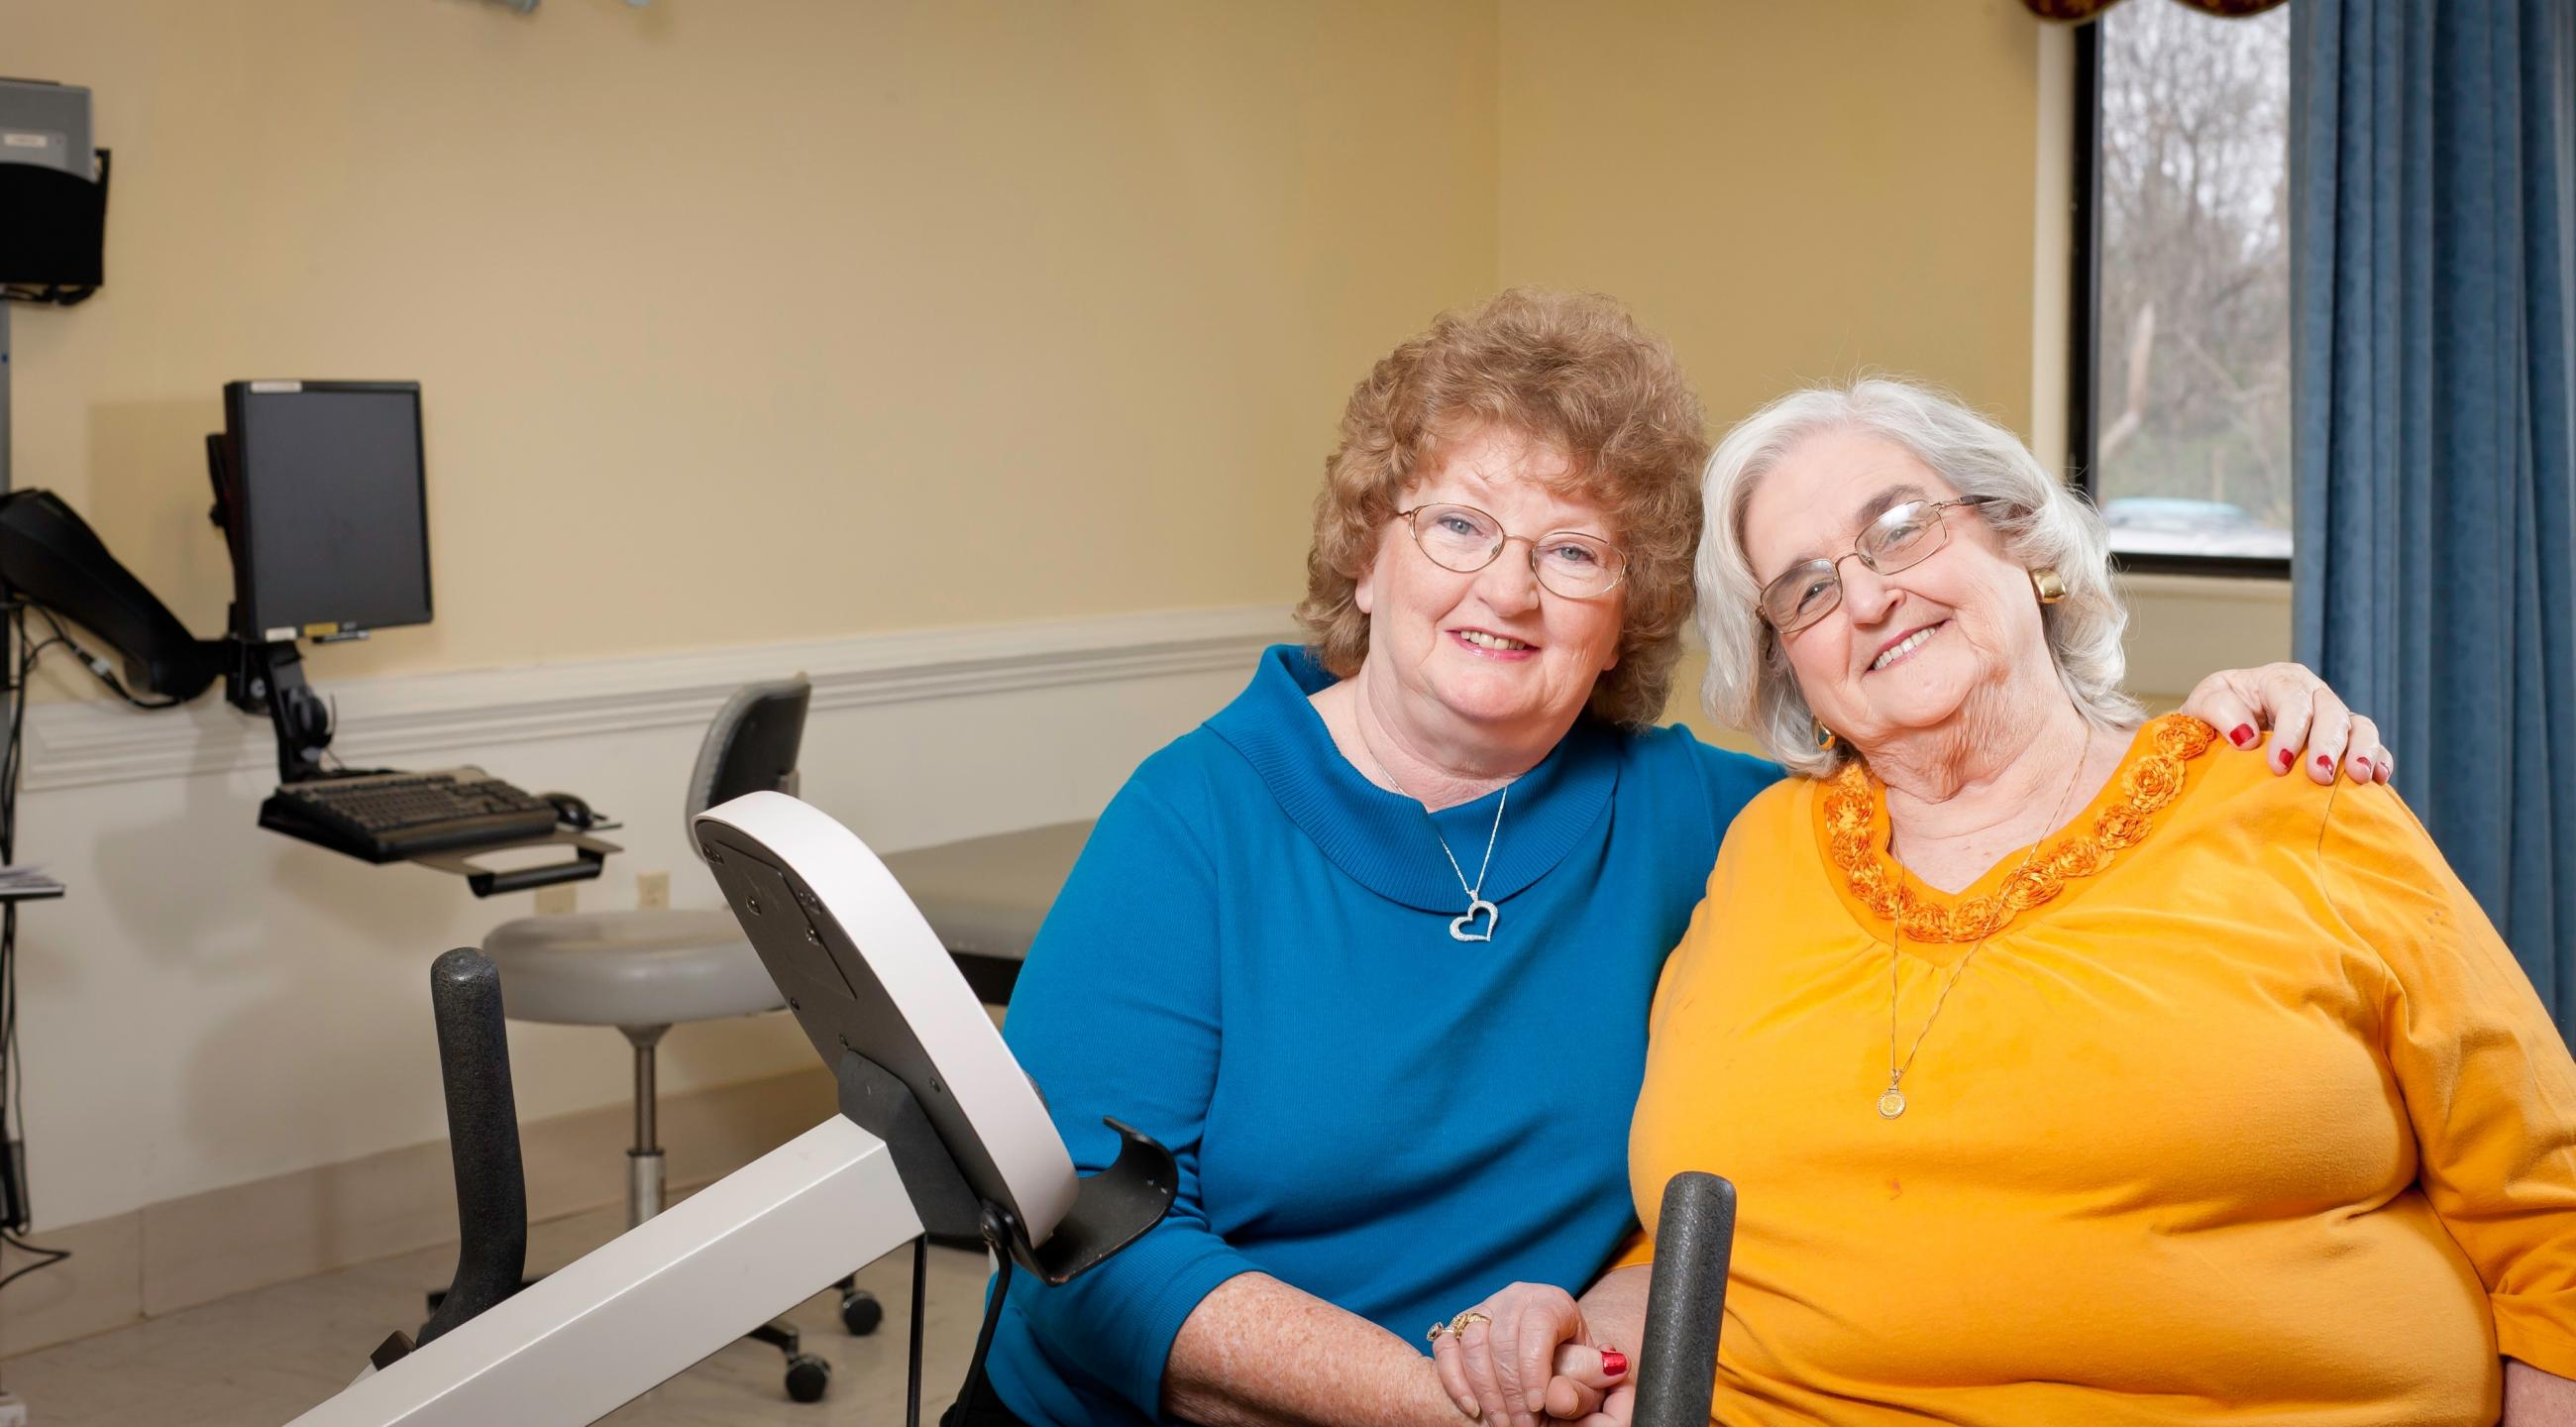 Carol McCauley and Hazel Gallier in our LifeWorks Rehab gym.